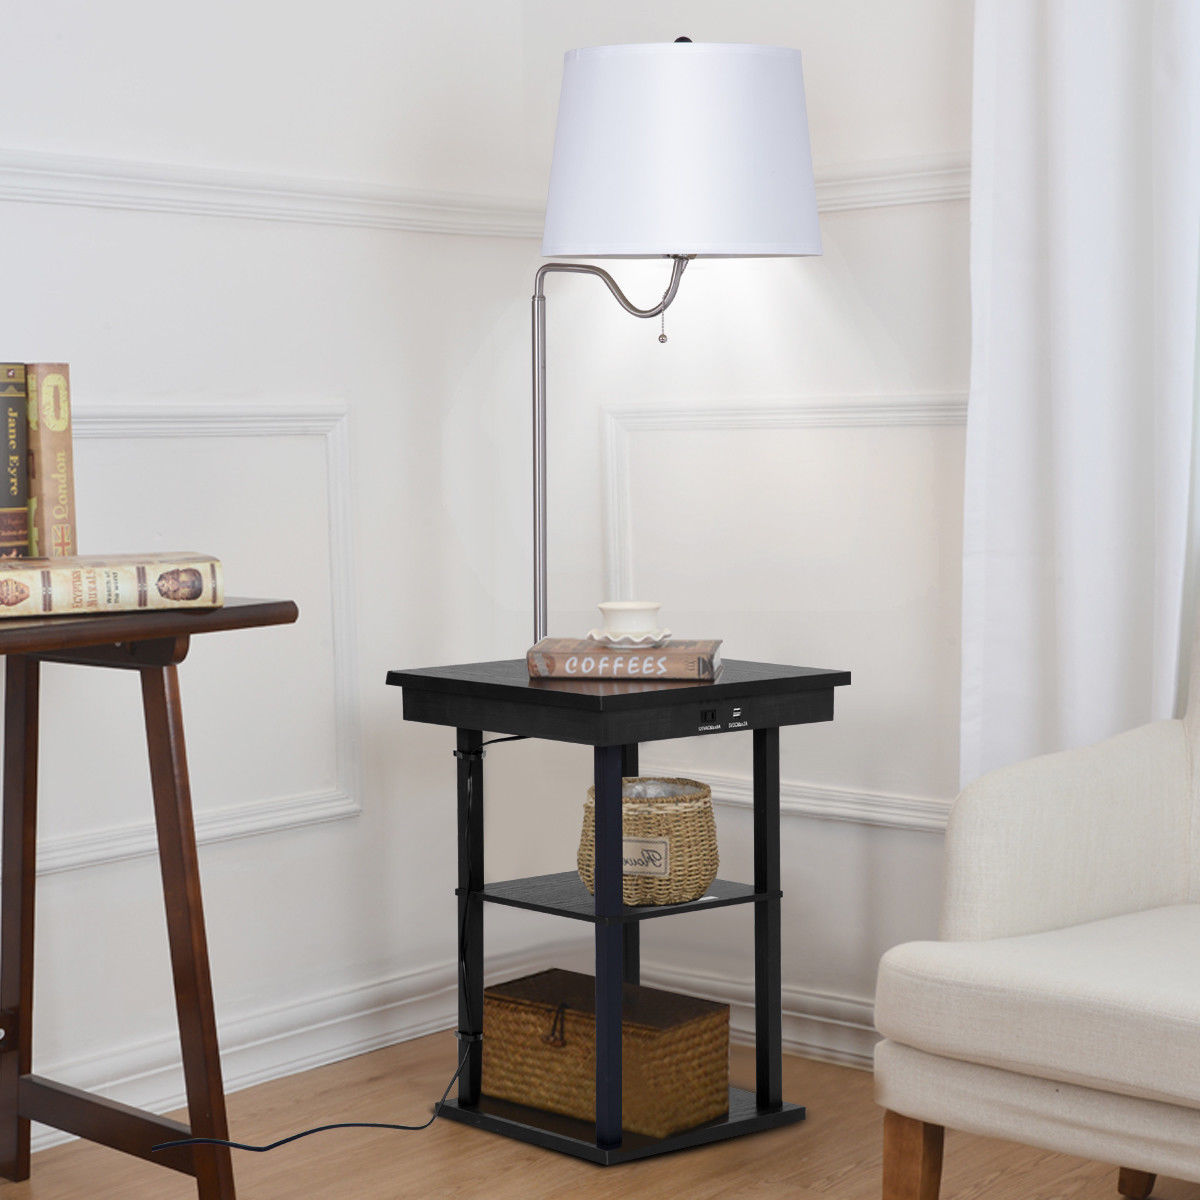 Gymax Floor Lamp Swing Arm Built In End Table W Shade 2 Usb Ports Living Room